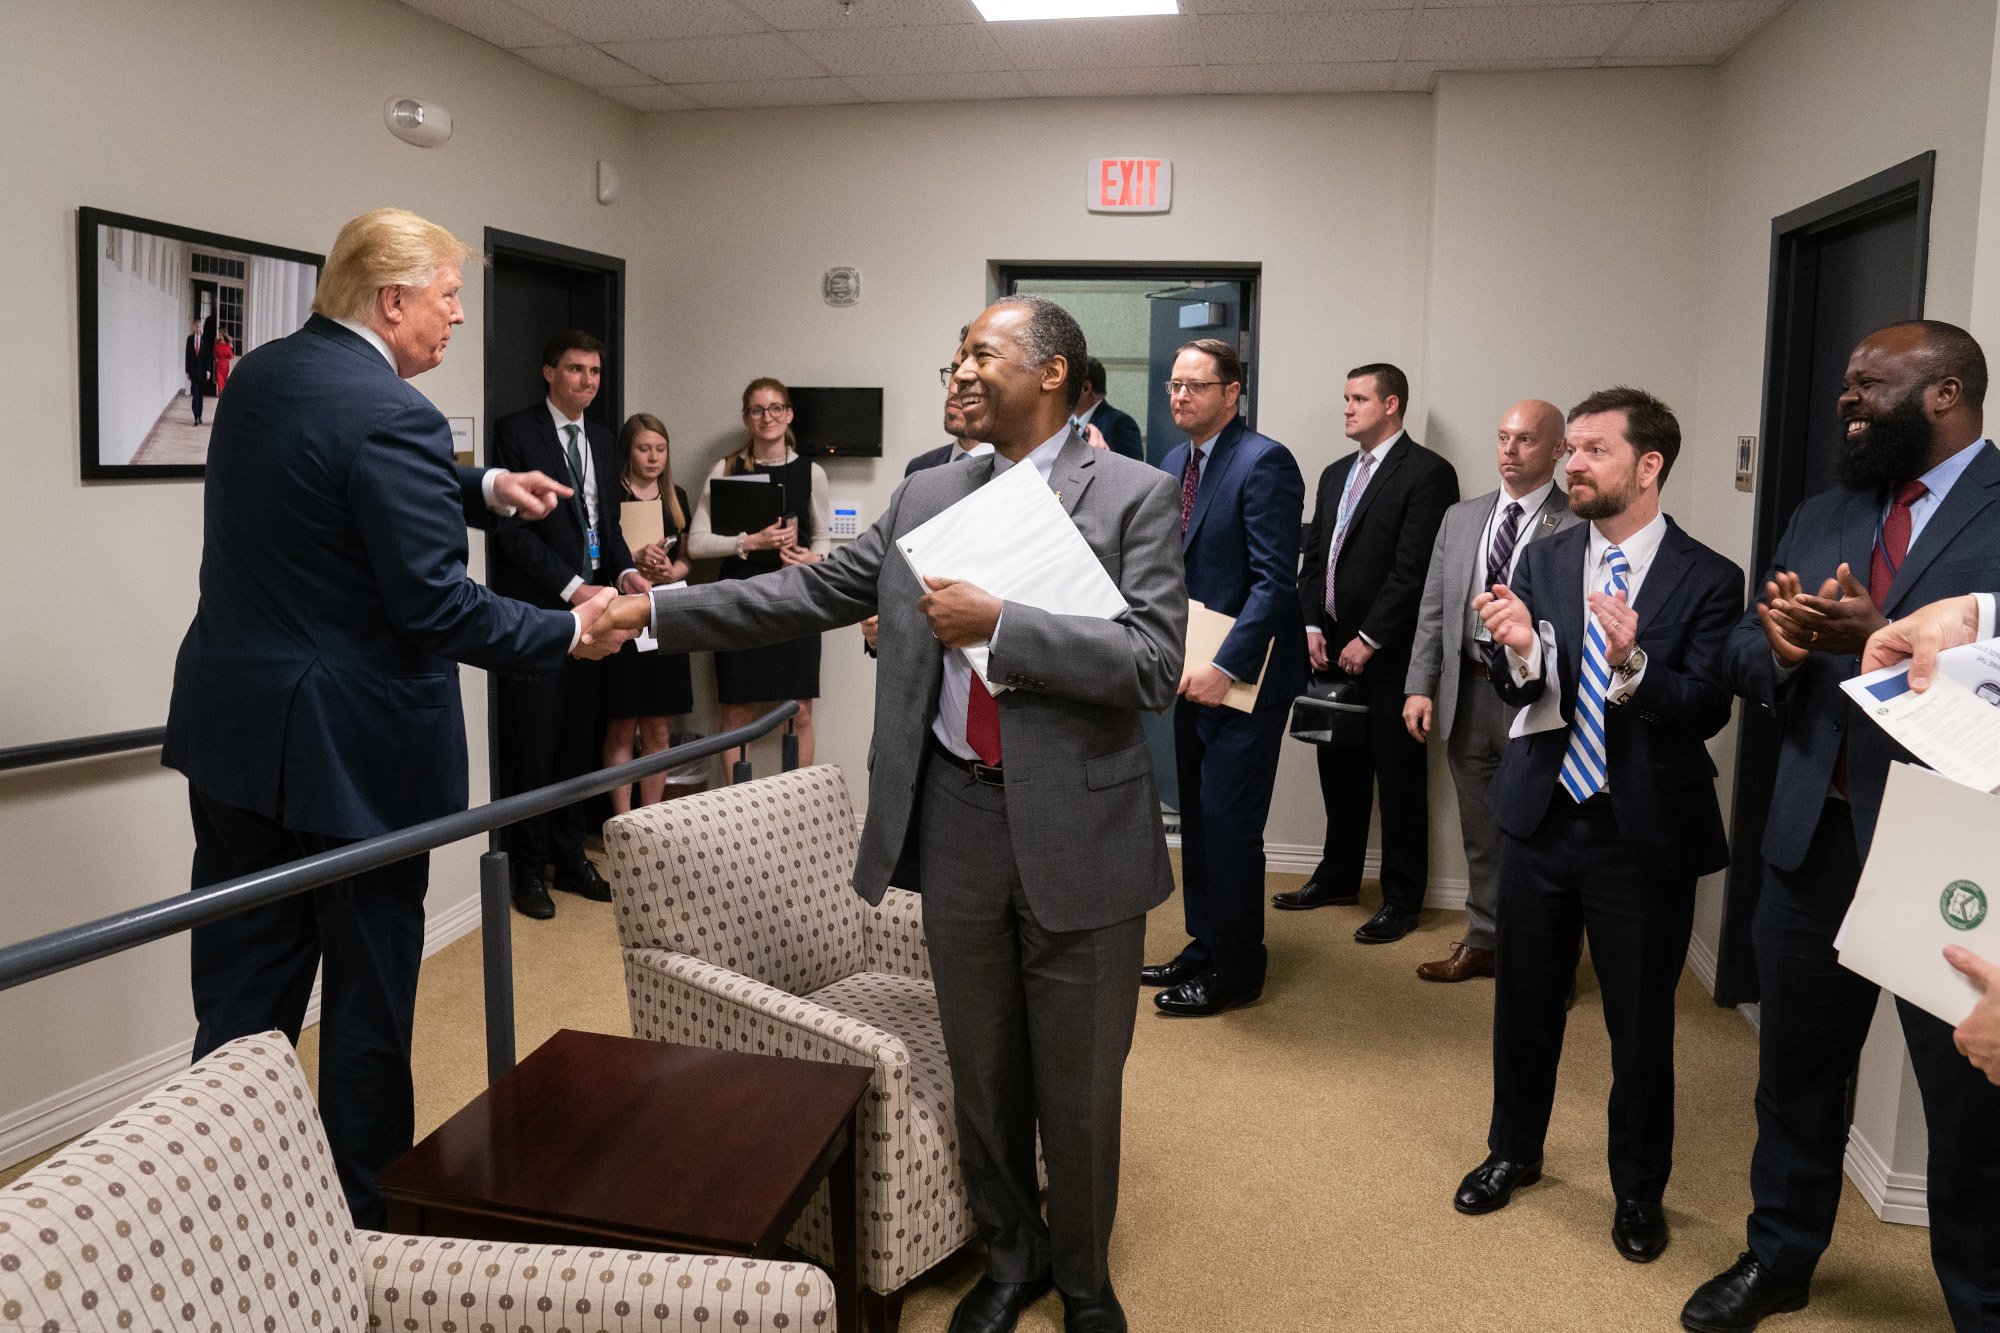 President Trump and Secretary Carson at an Opportunity Zones event